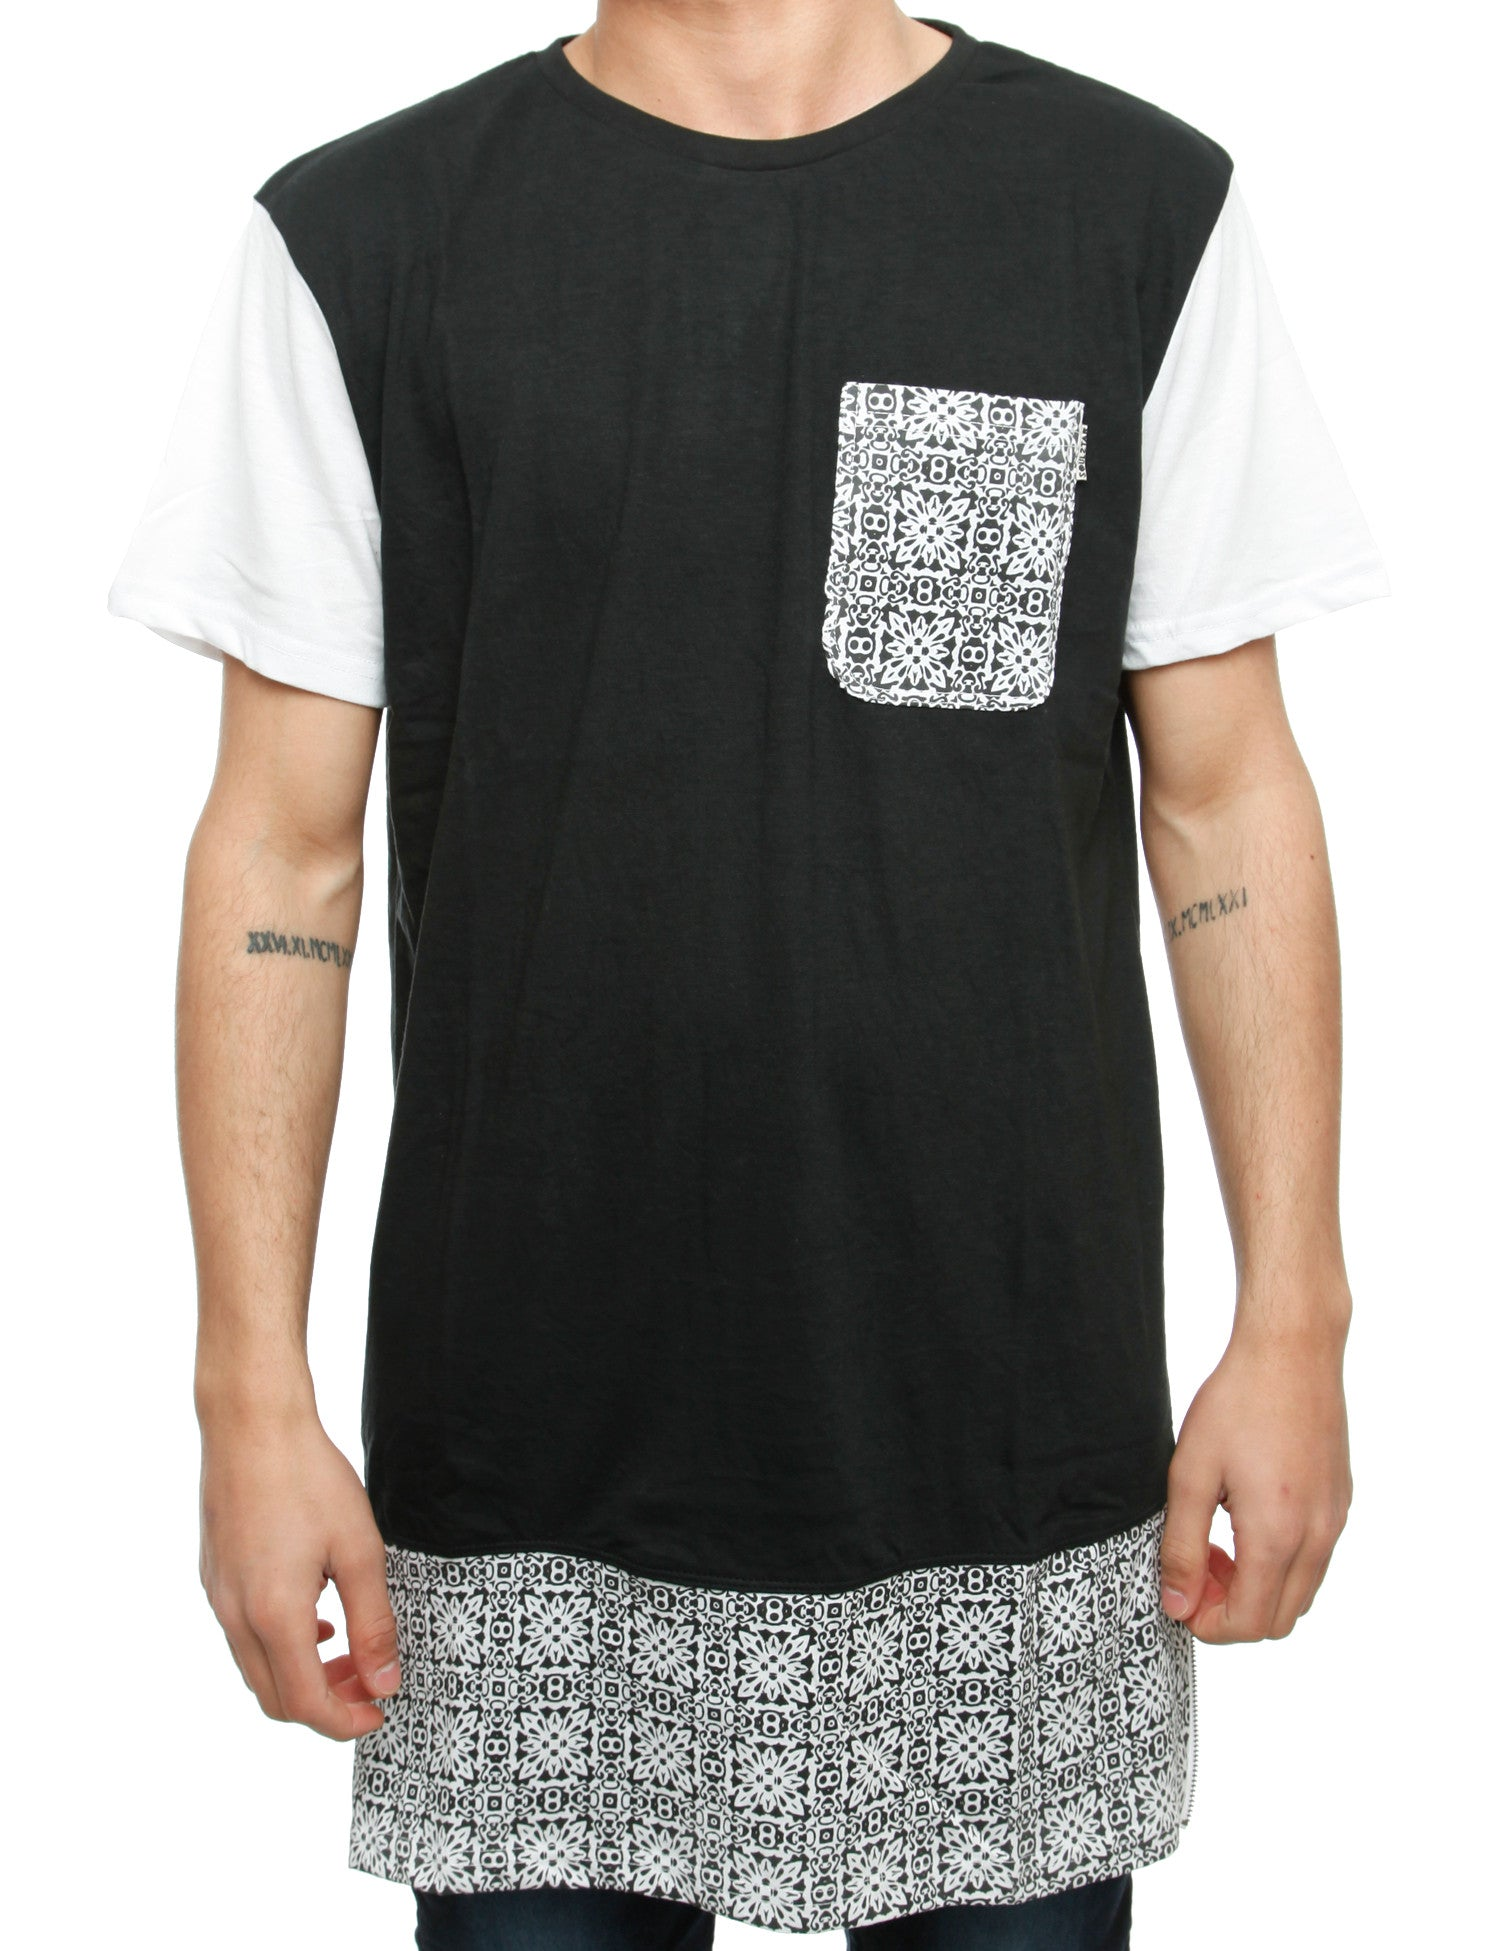 Soul Star Mt Mosaic T-Shirt Black